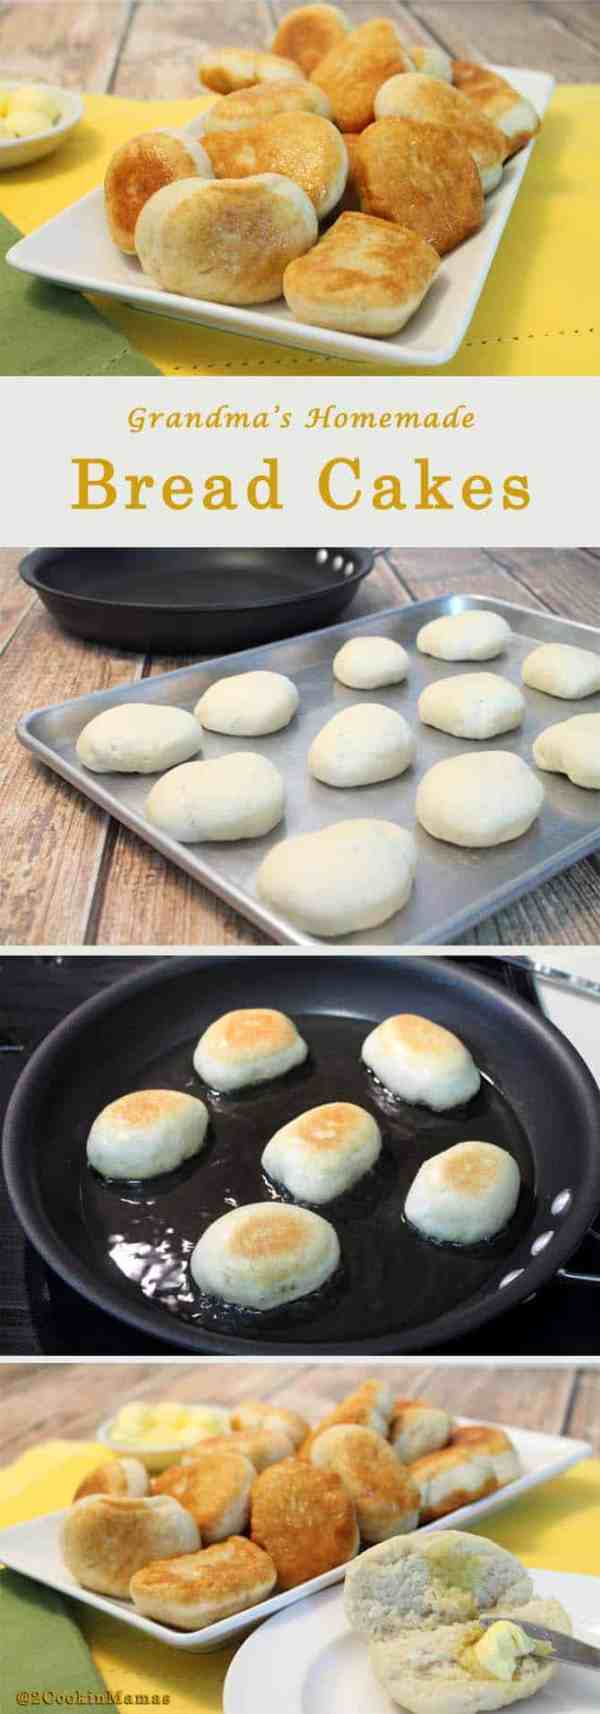 Bread Cakes steps | 2CookinMamas Grandma's easy bread recipe, fried to perfection. Perfectly soft warm interior and crispy crust. Put a pat of butter on them & YUM!